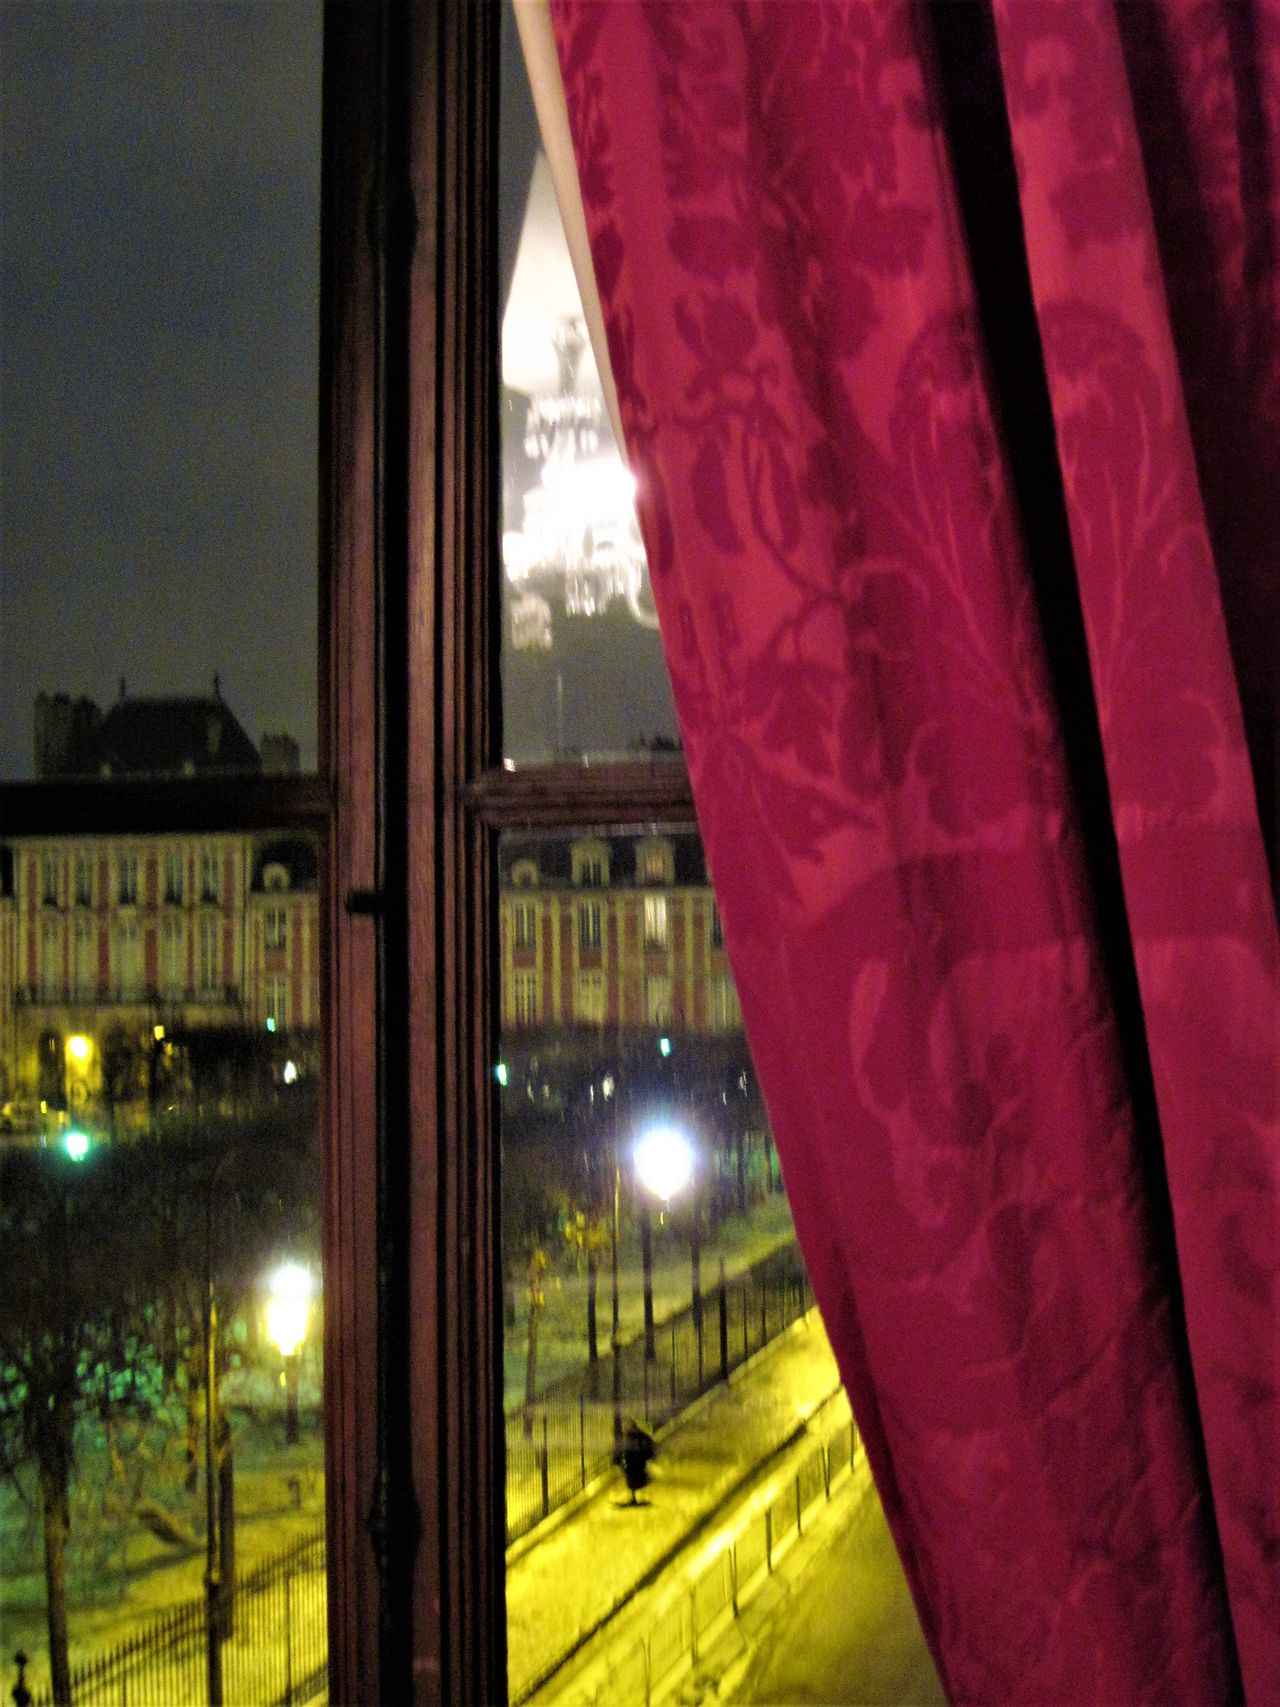 Architecture Building Exterior Built Structure City Curtain Illuminated Night No People Outdoors Place Des Vosges Reflection Tree Victor Hugo House